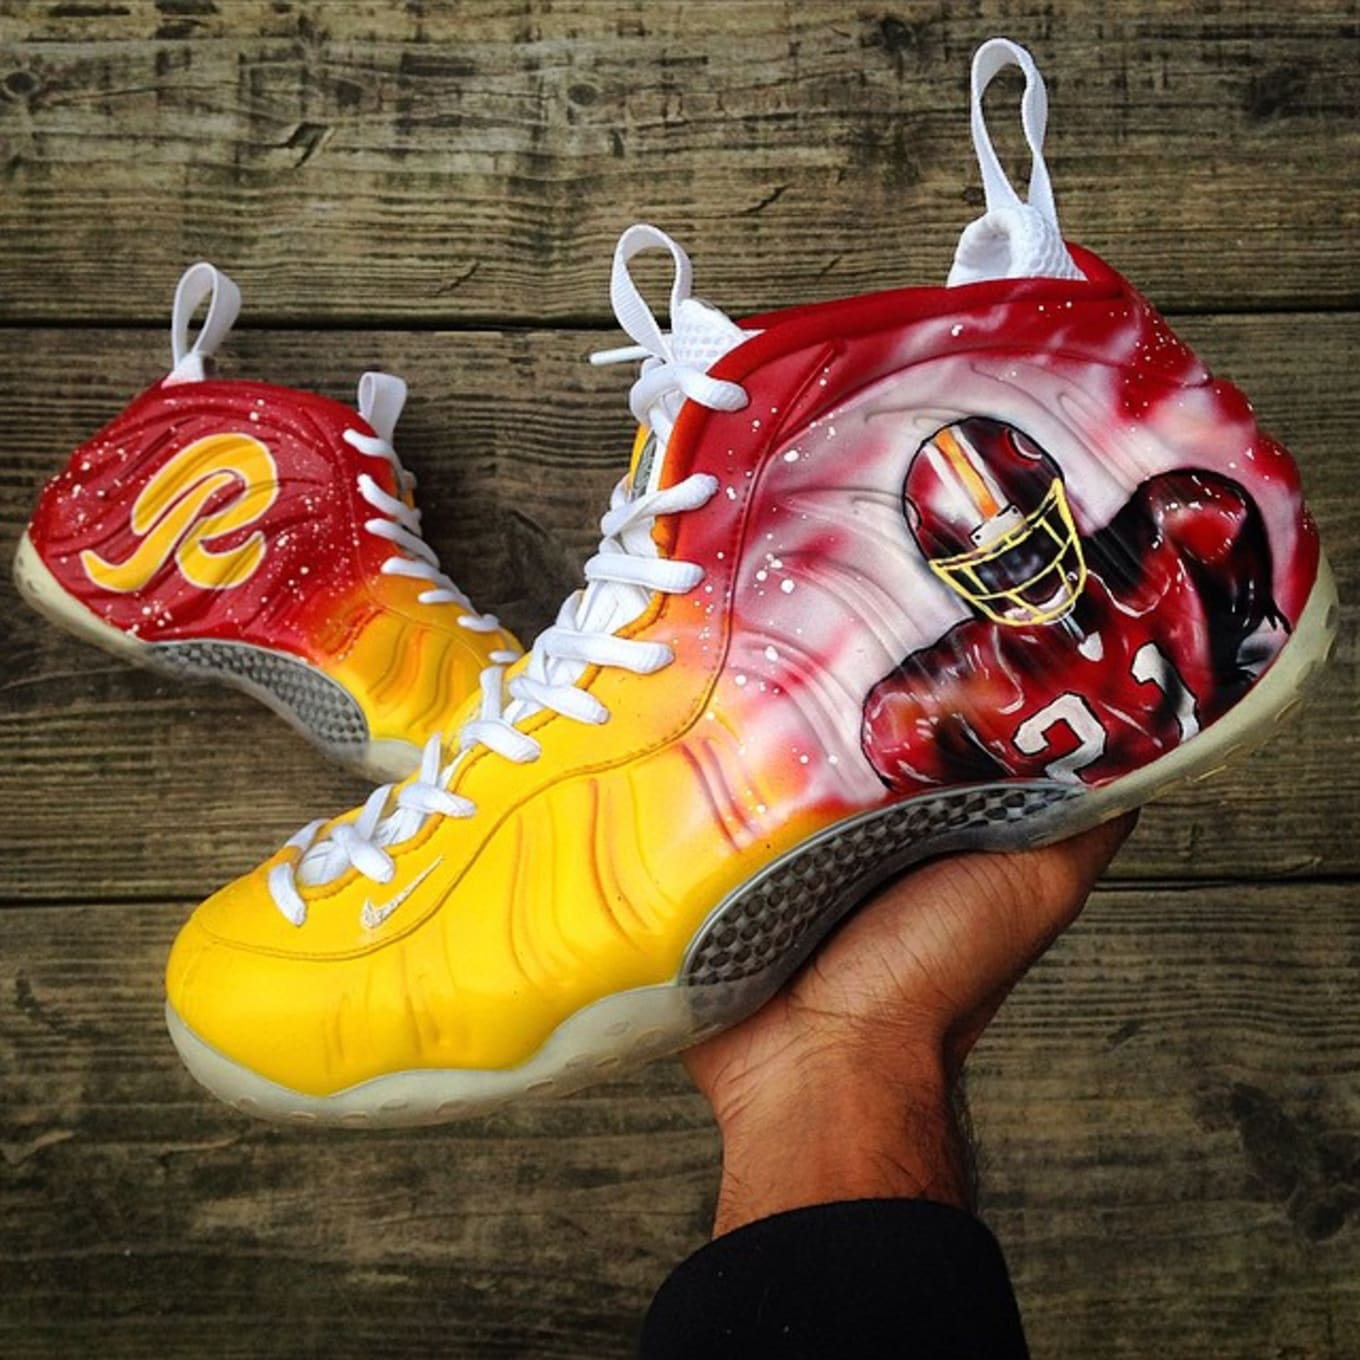 c598cfecd6360 Sean Taylor by Kreative Custom Kicks